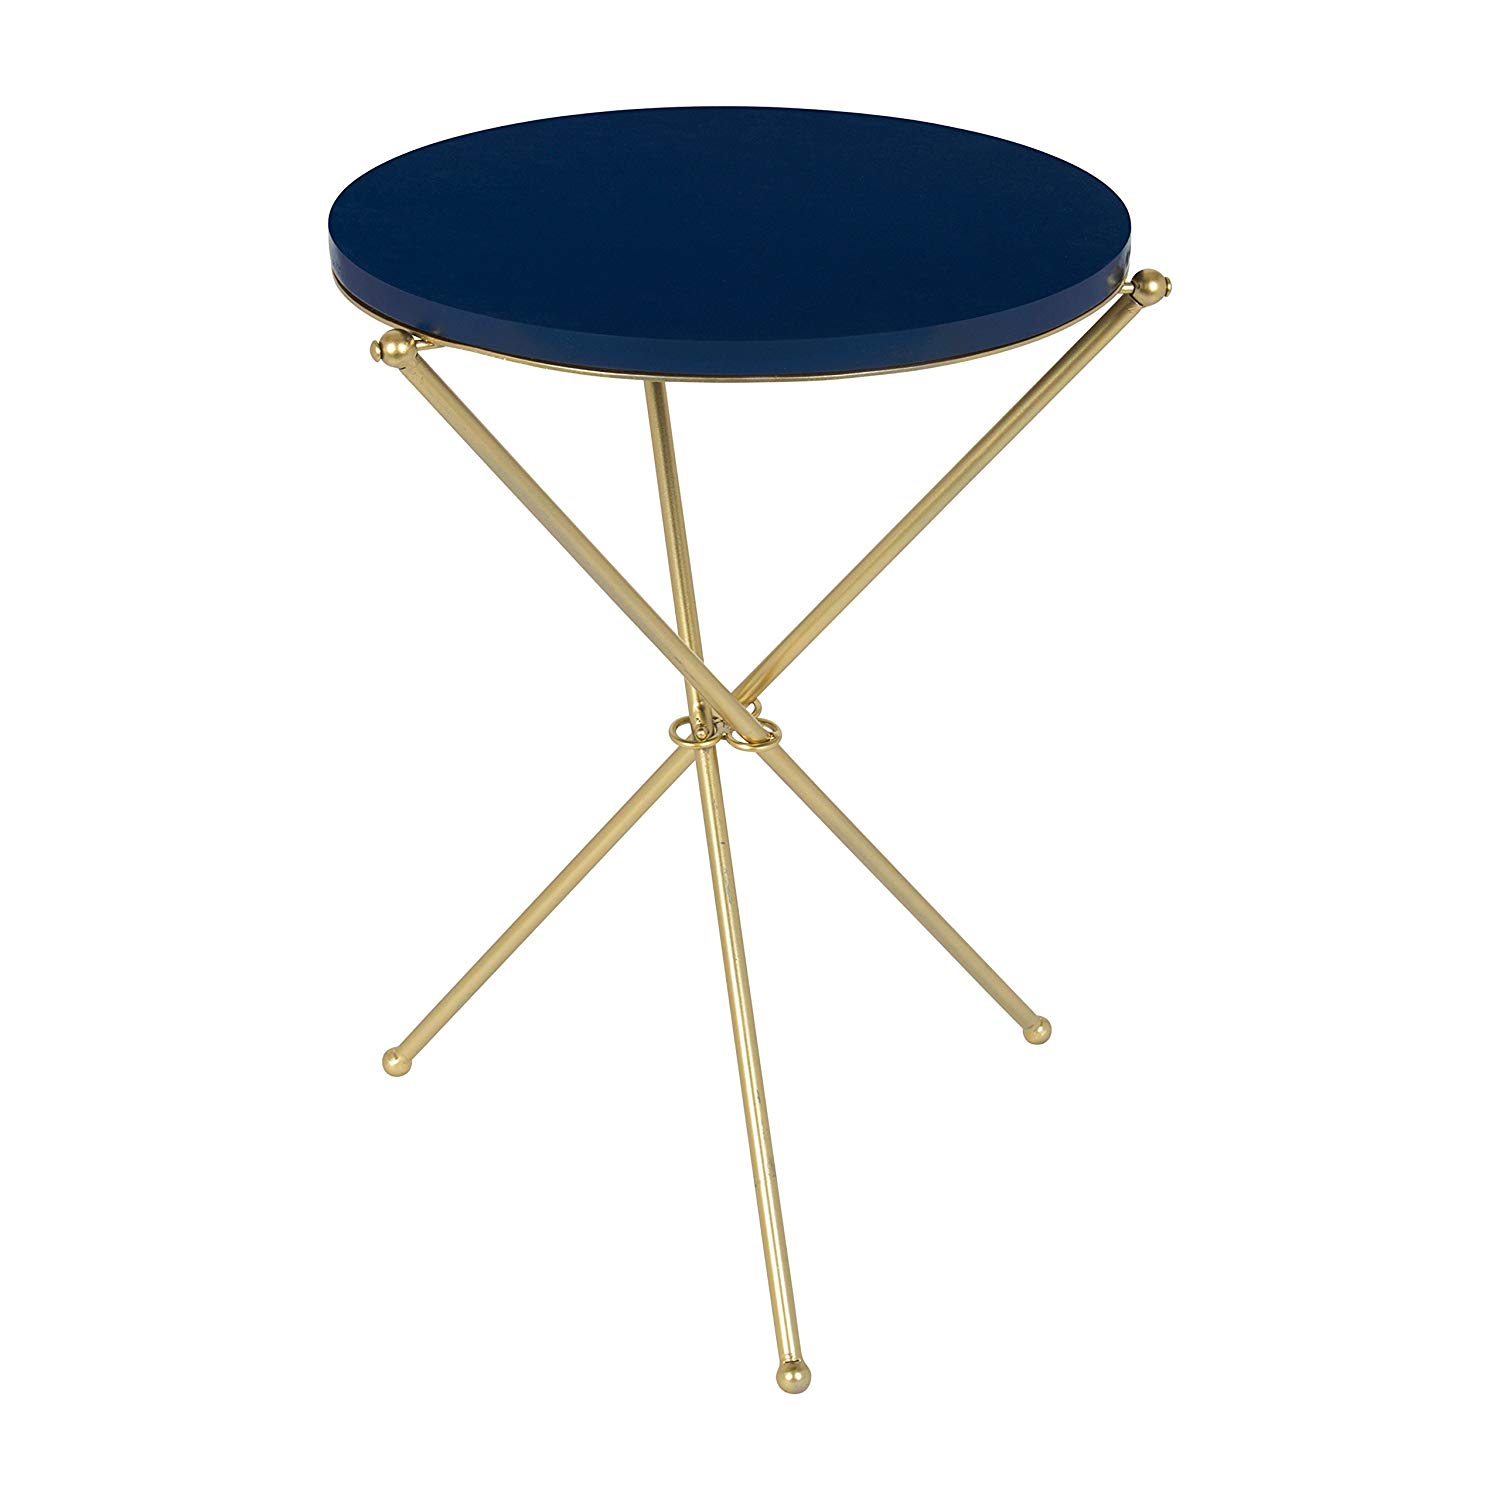 kate and laurel emellyn modern luxe folding side accent round wood metal table with painted wooden top tripod legs navy blue gold inch diameter pier one furniture dining tables